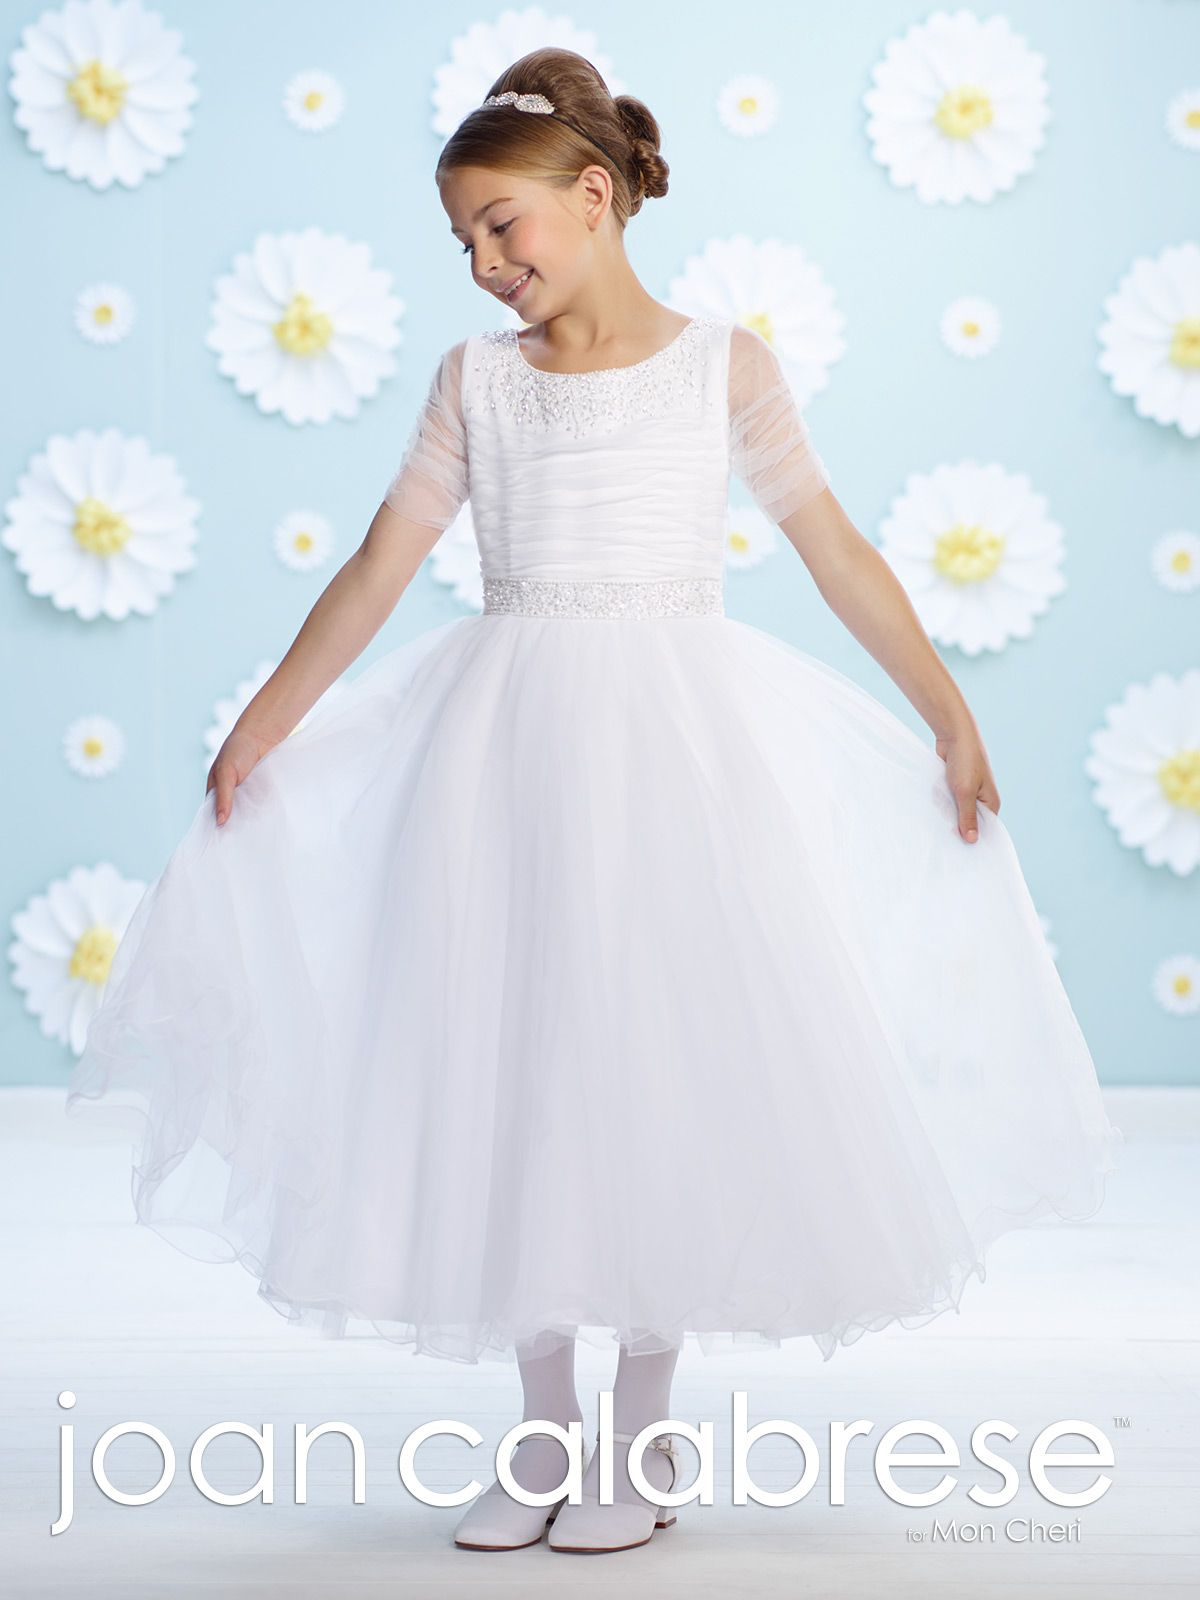 07c033a20a0 Joan Calabrese for Mon Cheri - 116385 - Tulle over satin tea-length A-line  dress with ruched illusion short sleeves